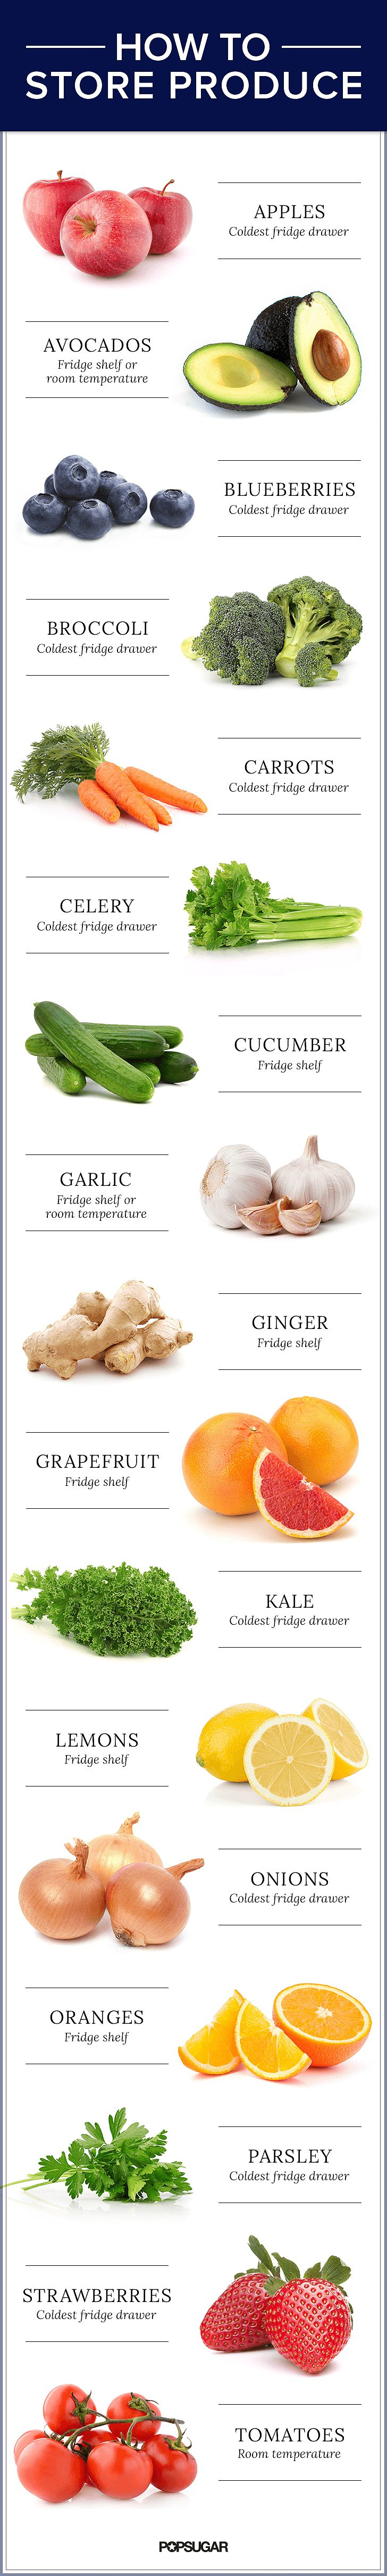 Without getting too technical about exact temperatures — or the ripening gas known as ethylene — here's a simple chart that lays out where to store your most common produce, whether at room temperature, on a refrigerator shelf, or in the crisper (the coldest fridge drawer).